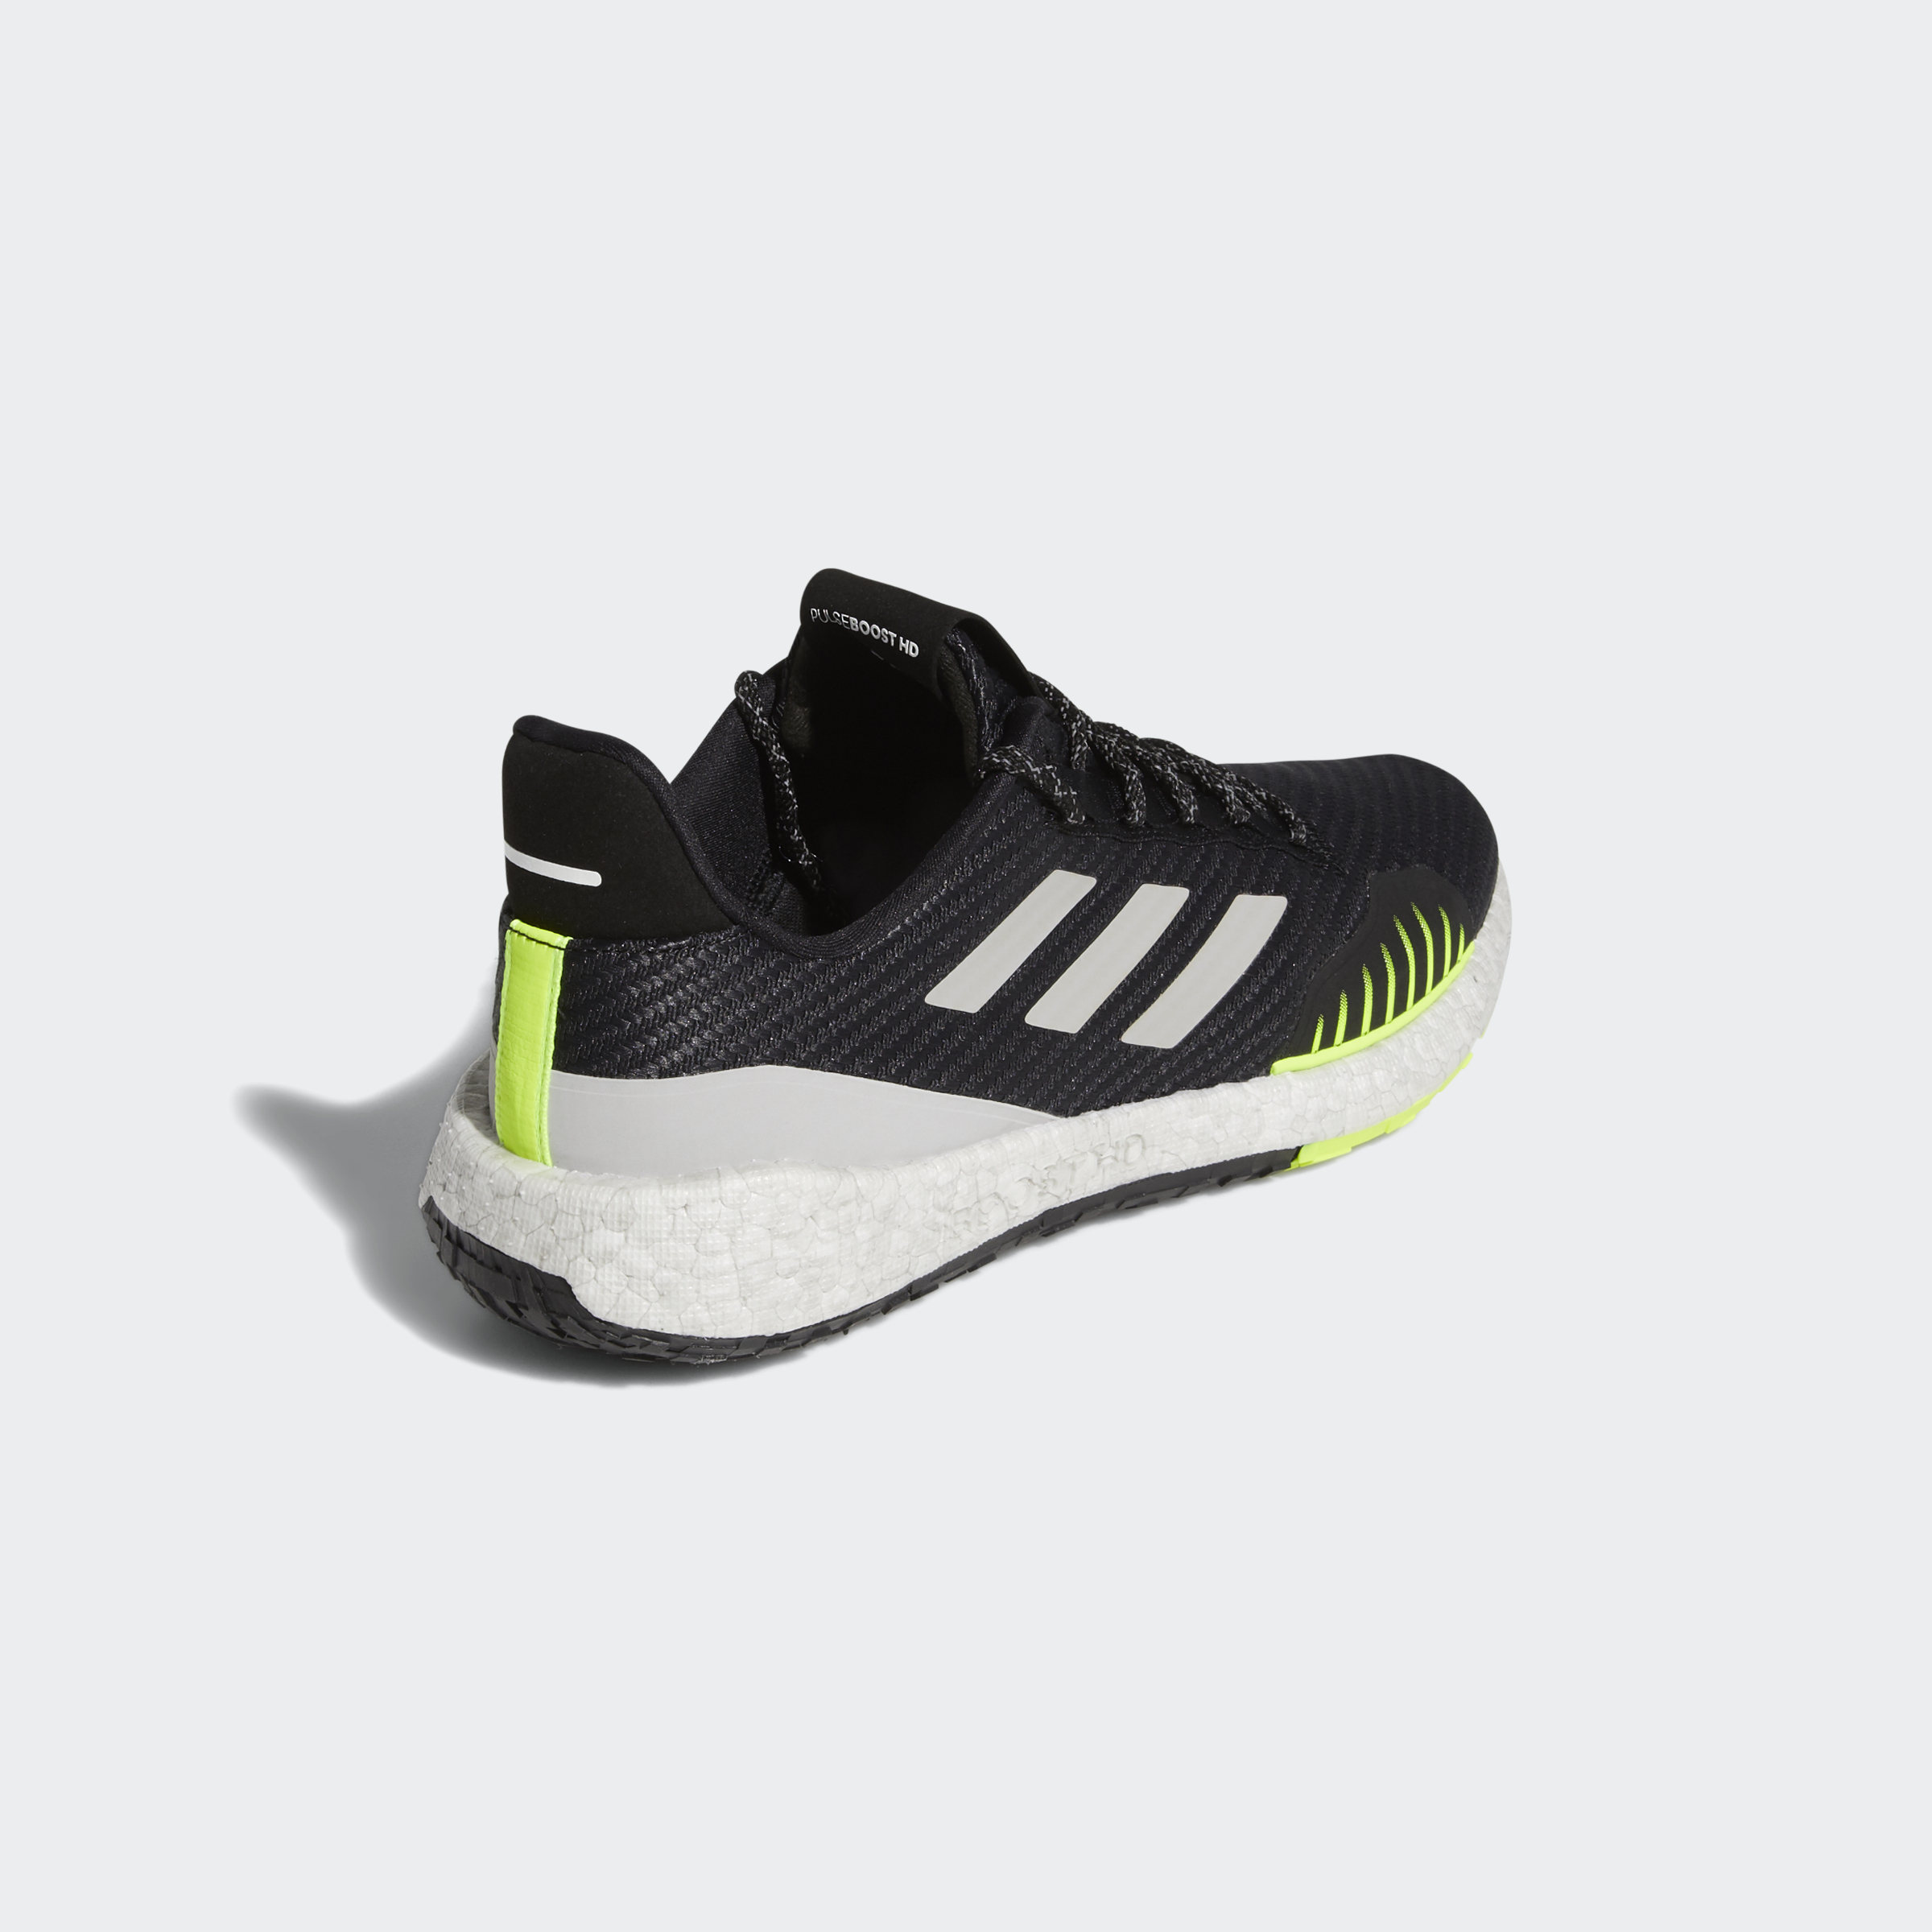 miniature 16 - adidas Pulseboost HD Winter Shoes  Athletic & Sneakers